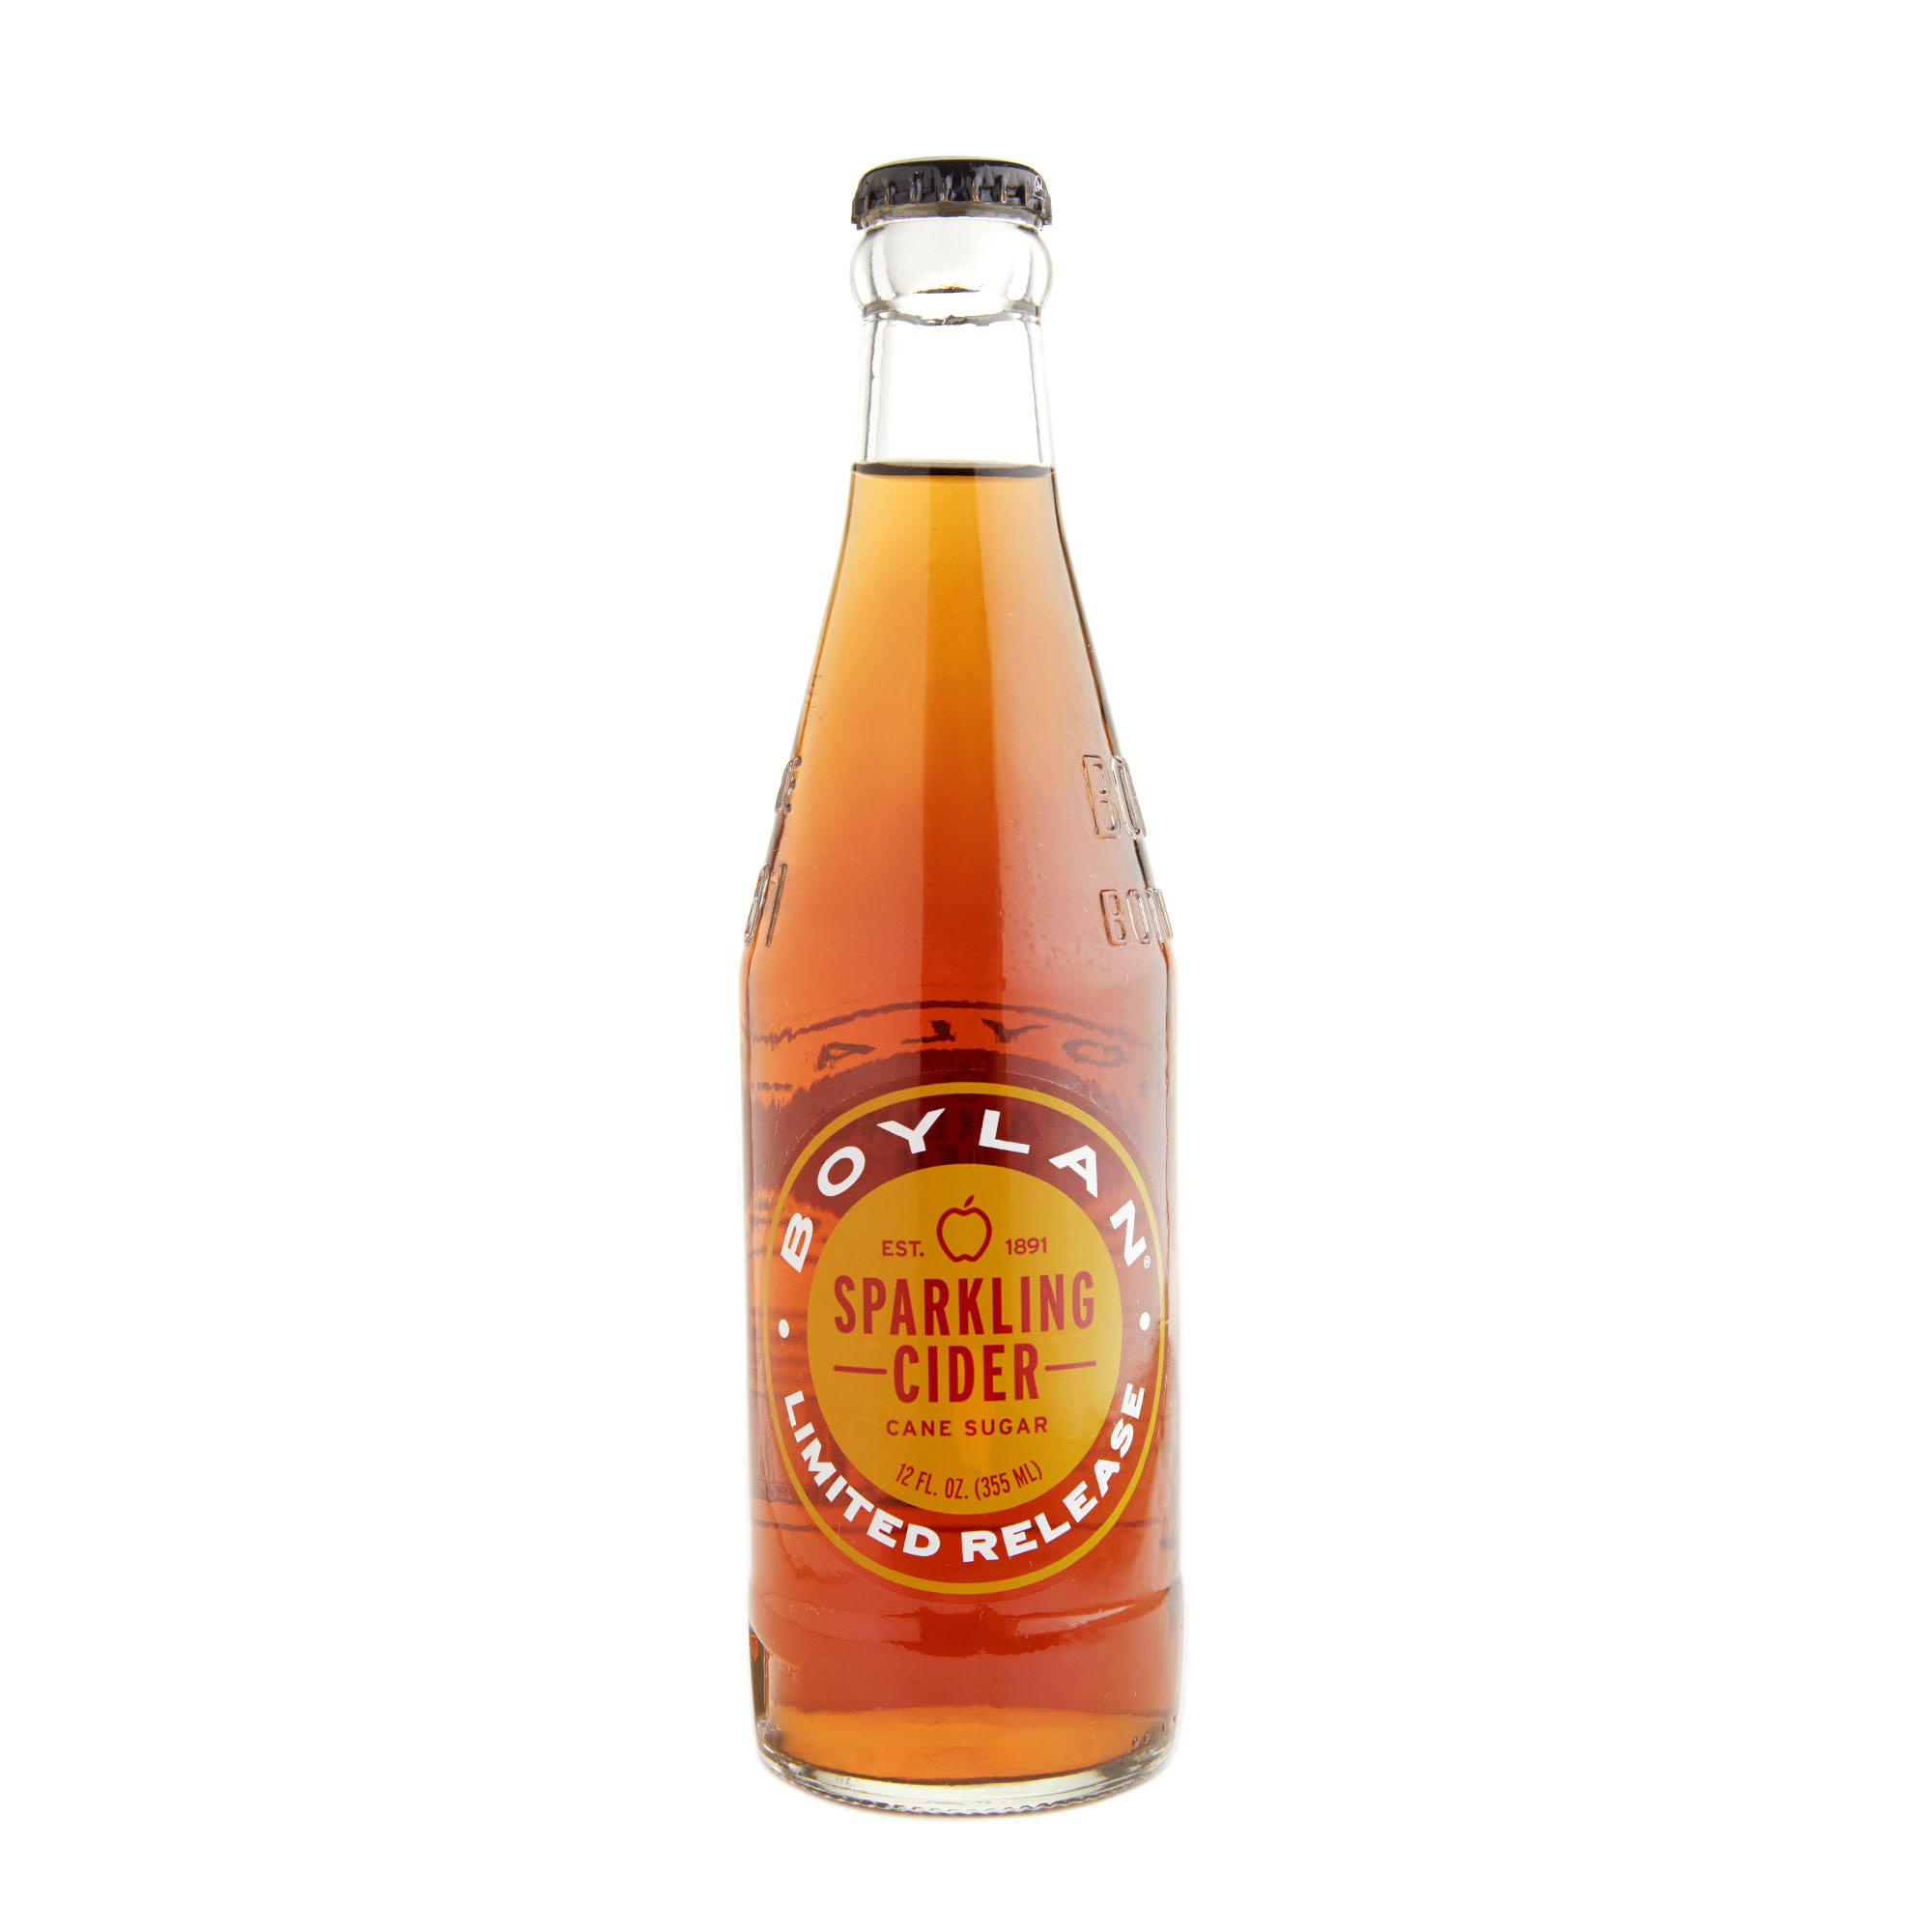 Boylan Limited Release Sparkling Cider - 12 fl oz bottle